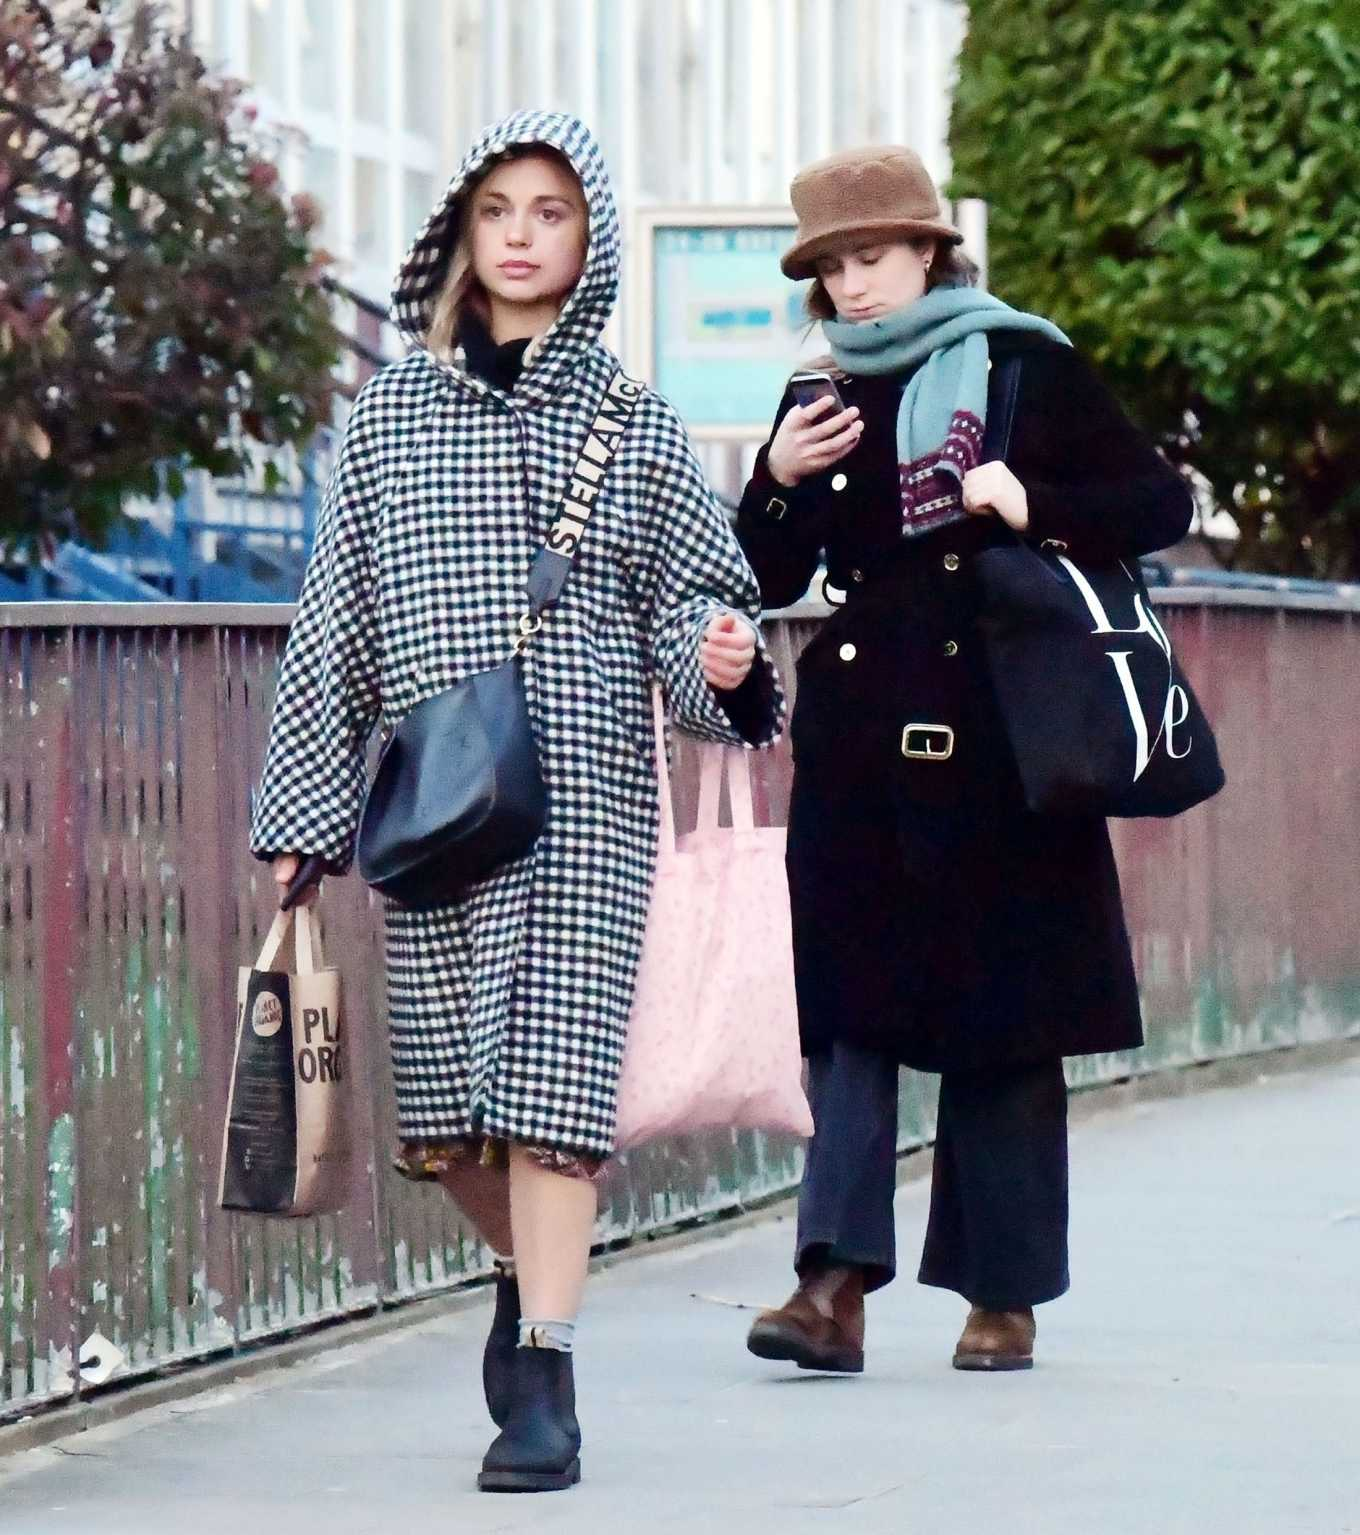 Amelia Windsor 2020 : Amelia Windsor – Looks stylis while out in the trendy area of Notting Hill-19